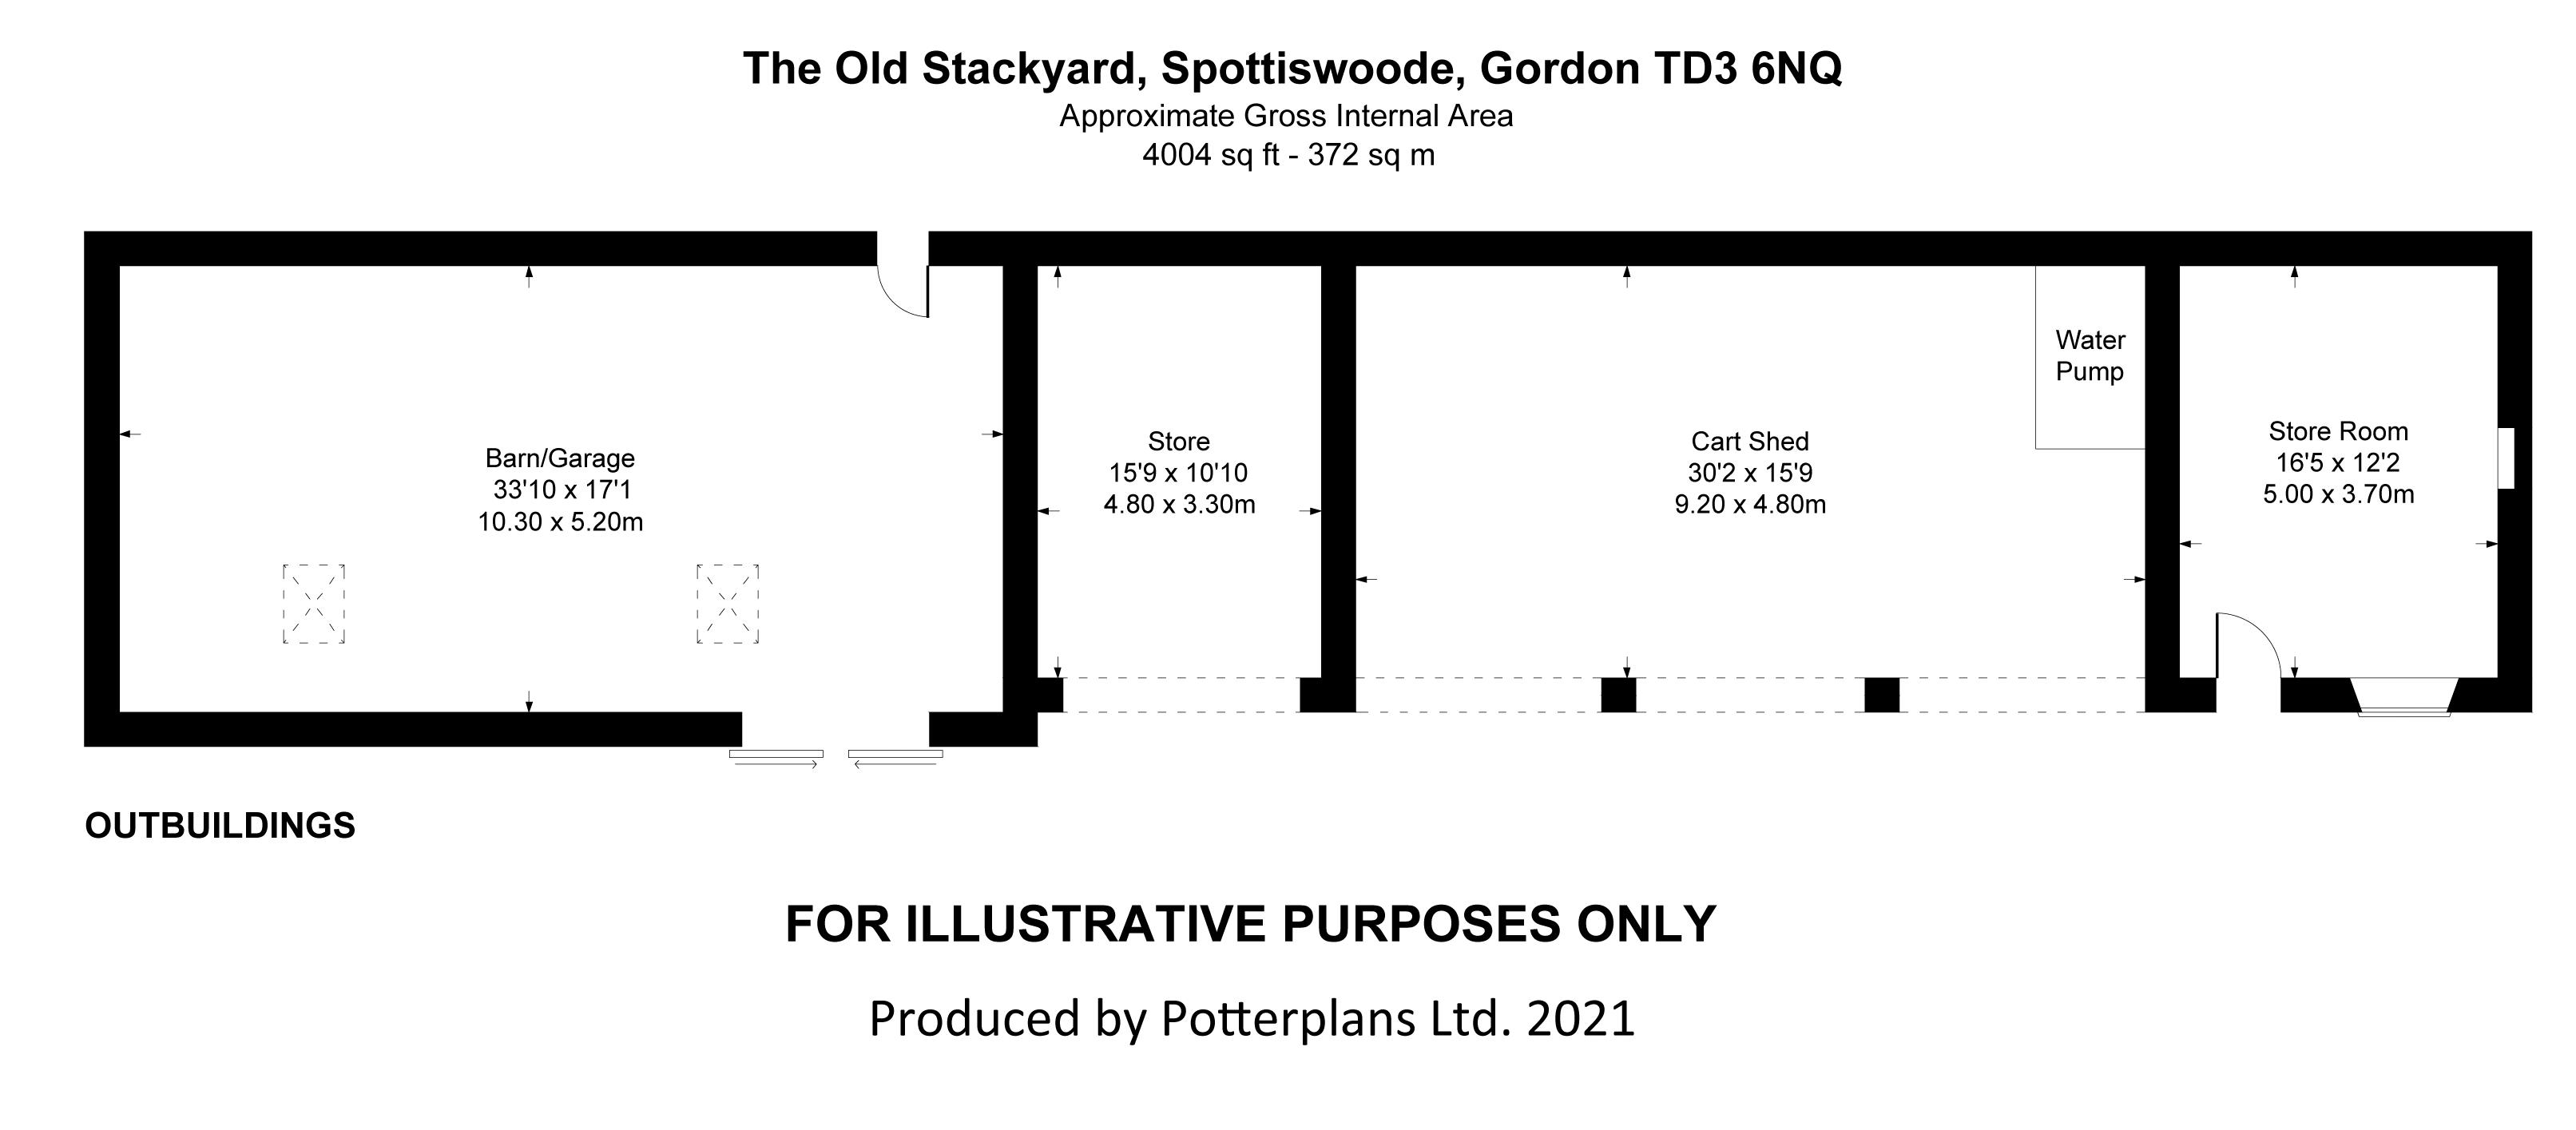 The Old Stackyard Outbuildings